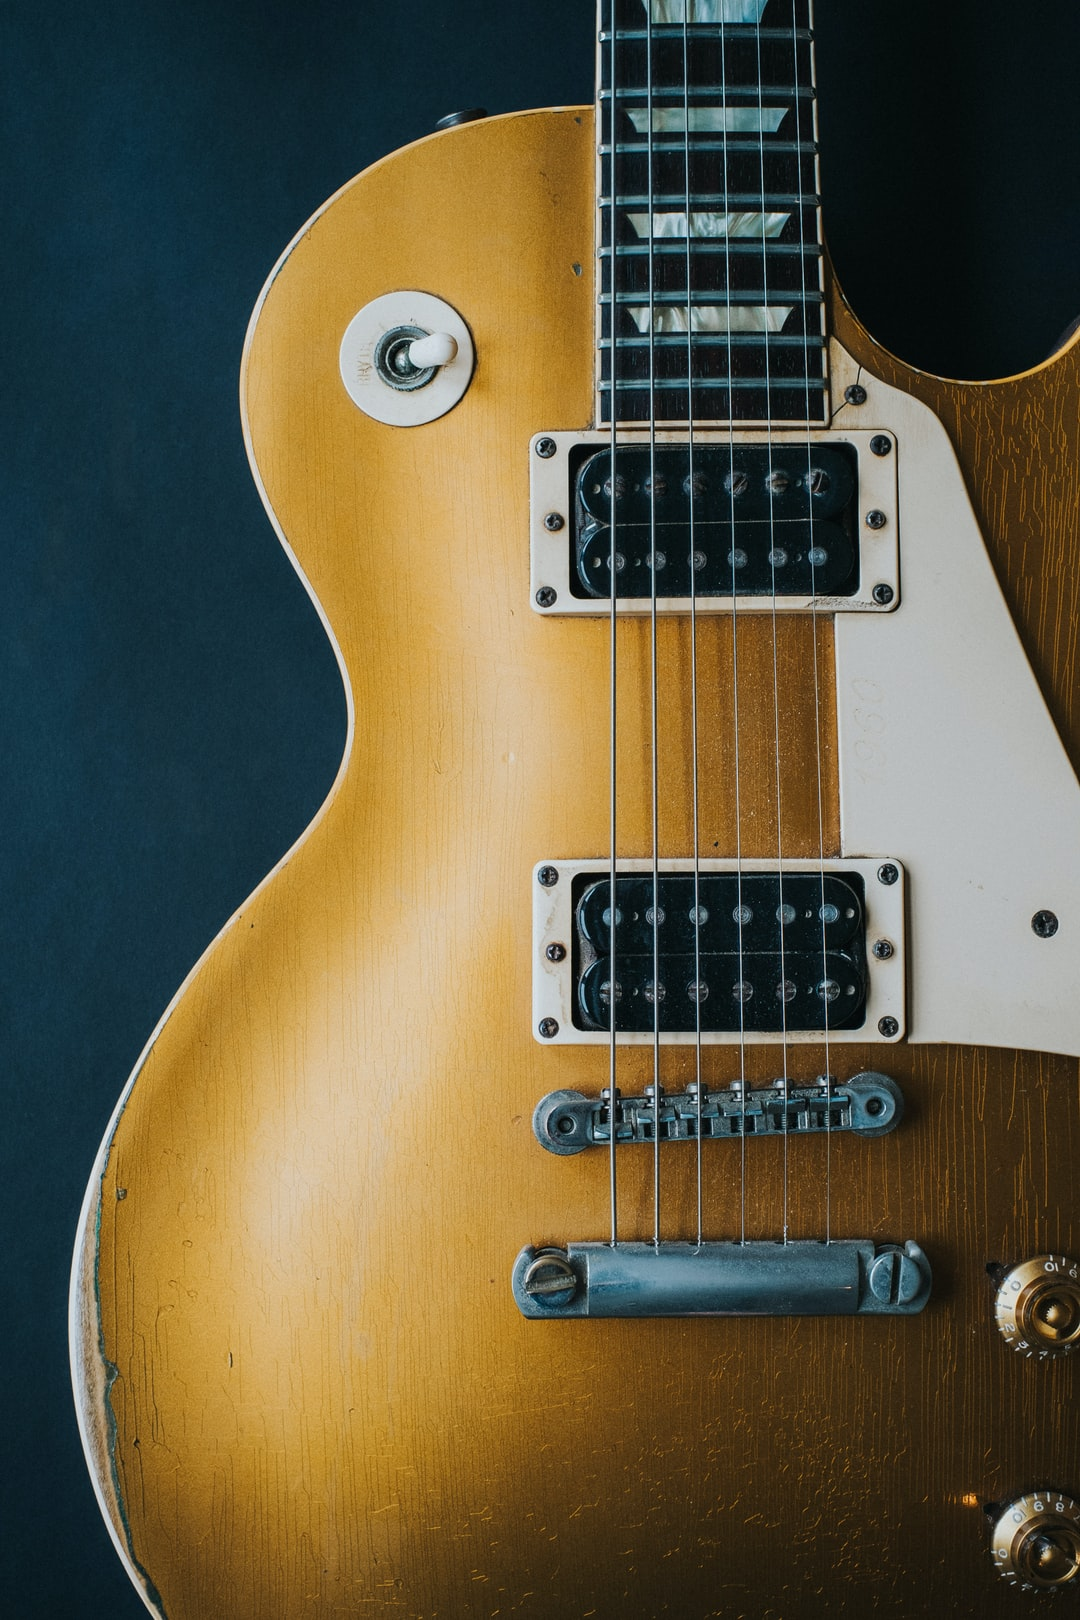 Best 100 guitar images hq download free pictures on - Guitar border wallpaper ...